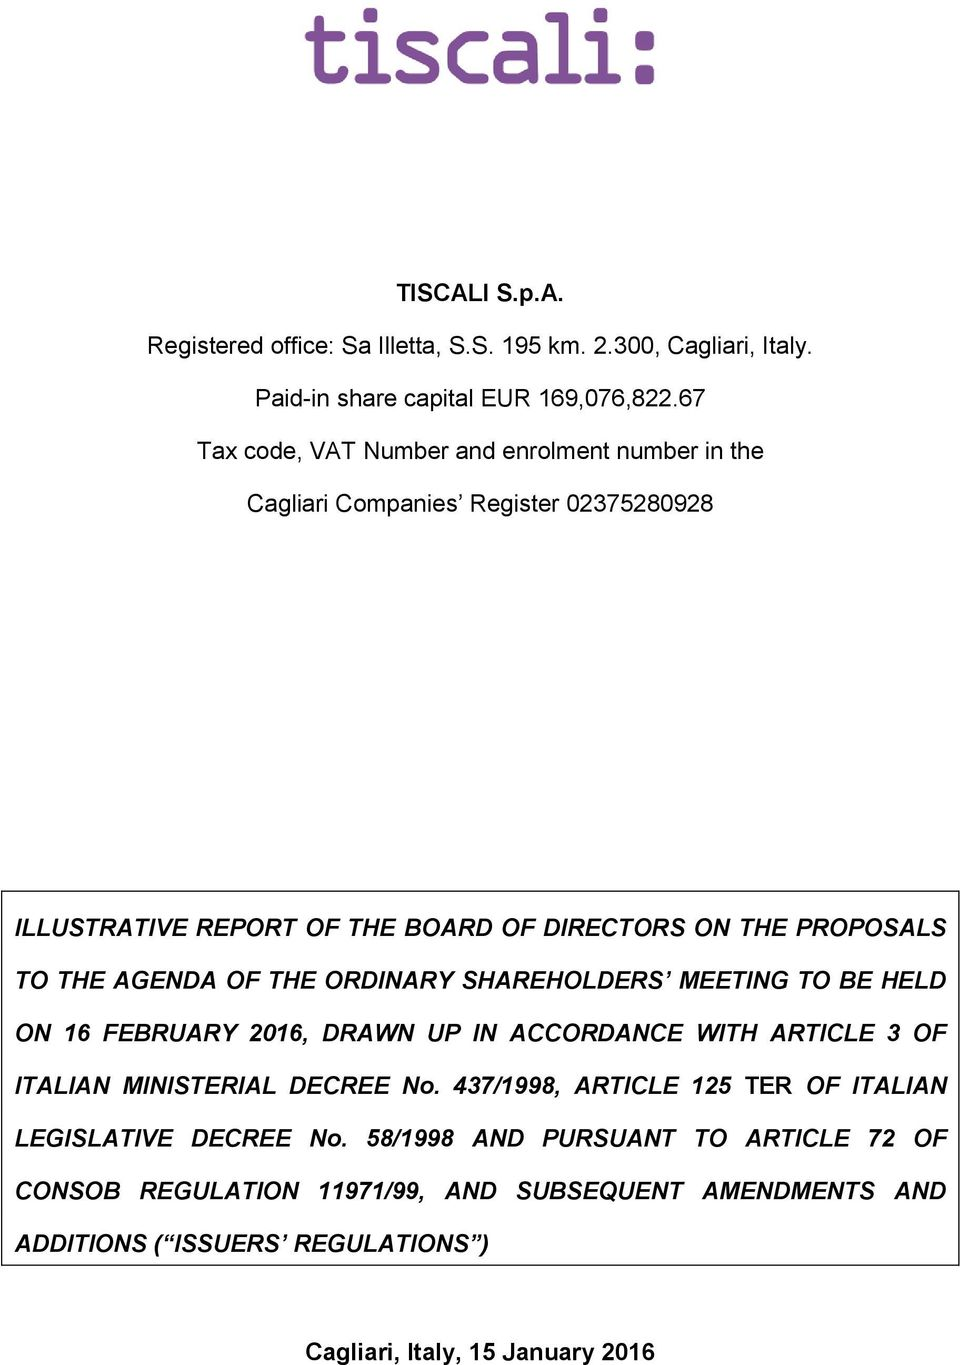 AGENDA OF THE ORDINARY SHAREHOLDERS MEETING TO BE HELD ON 16 FEBRUARY 2016, DRAWN UP IN ACCORDANCE WITH ARTICLE 3 OF ITALIAN MINISTERIAL DECREE No.